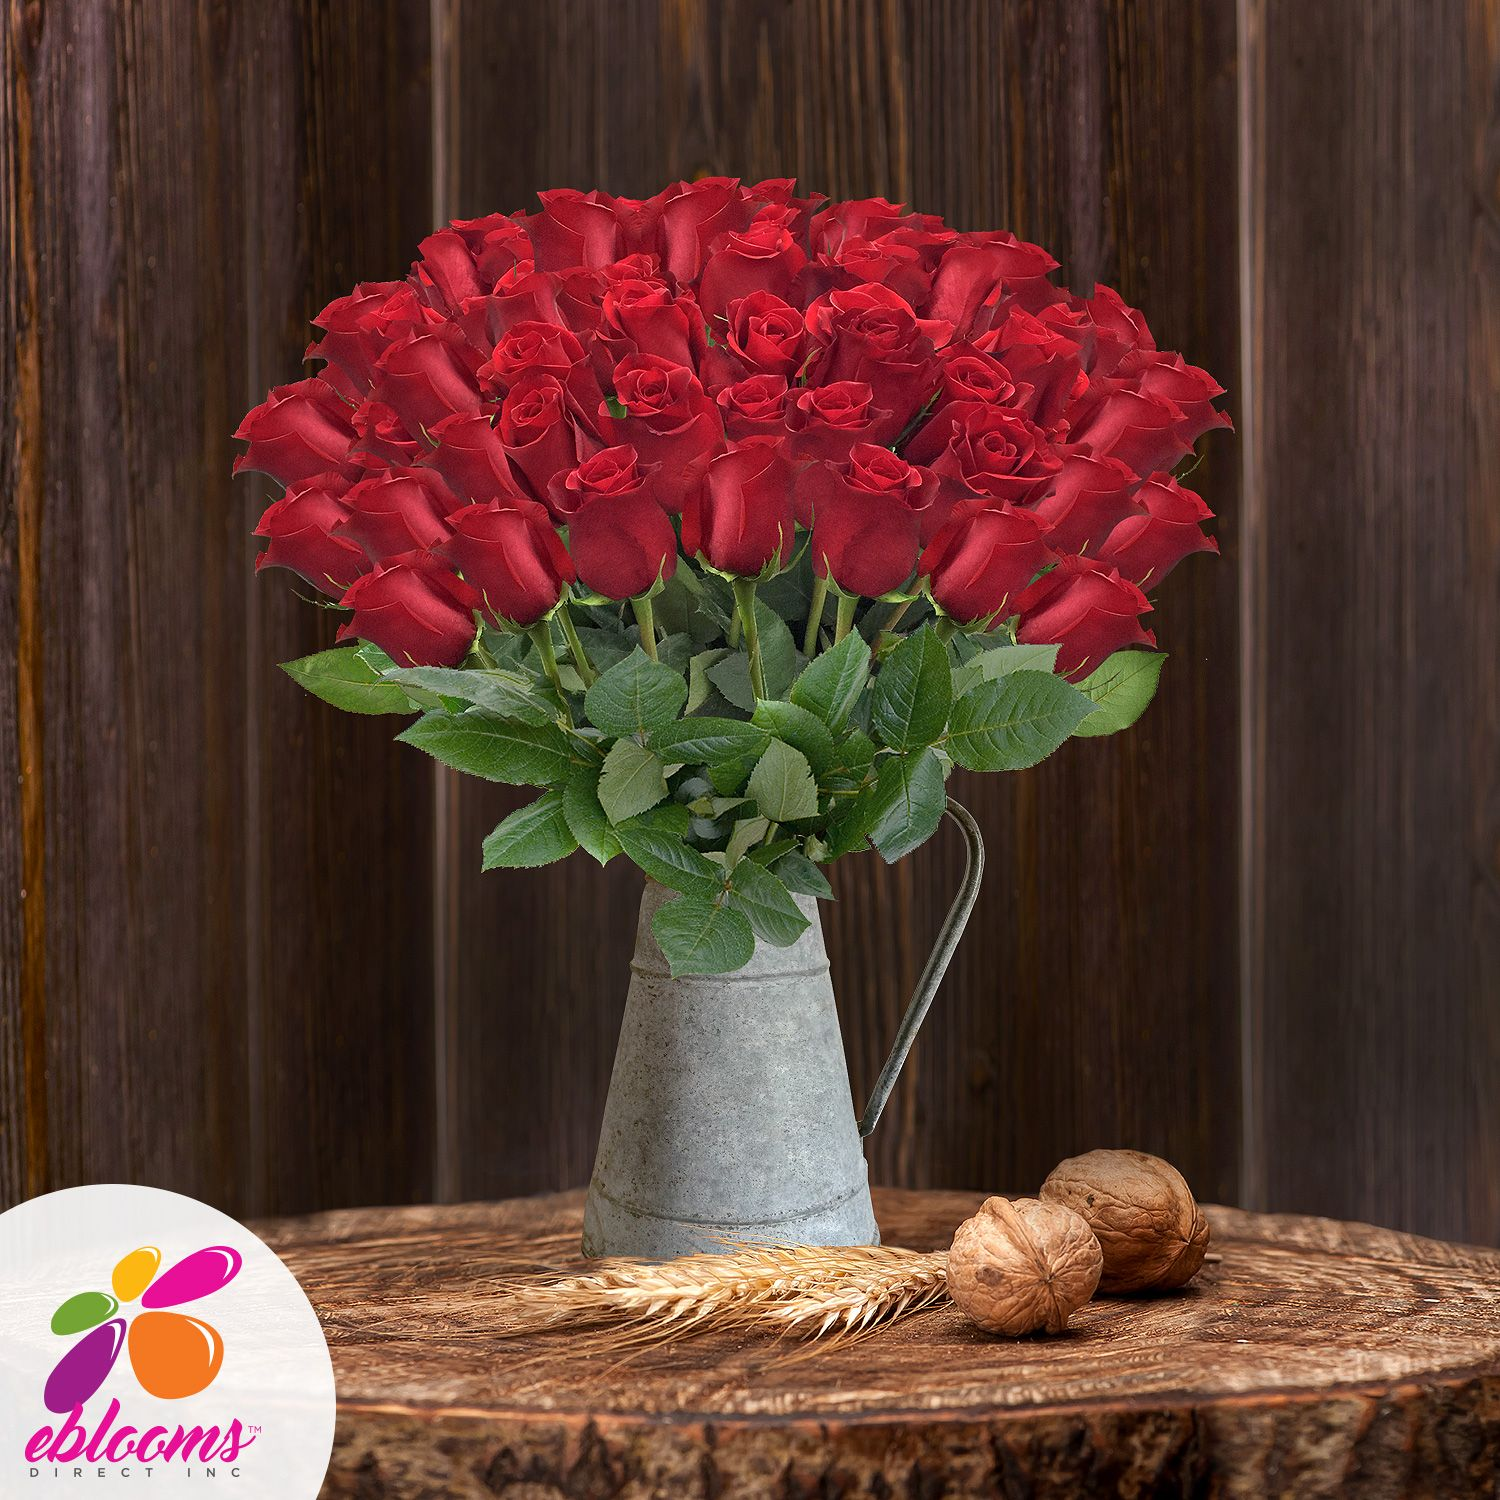 Wholesale Flowers For Weddings Events: Where To Buy Bulk Flowers Online For Your Wedding